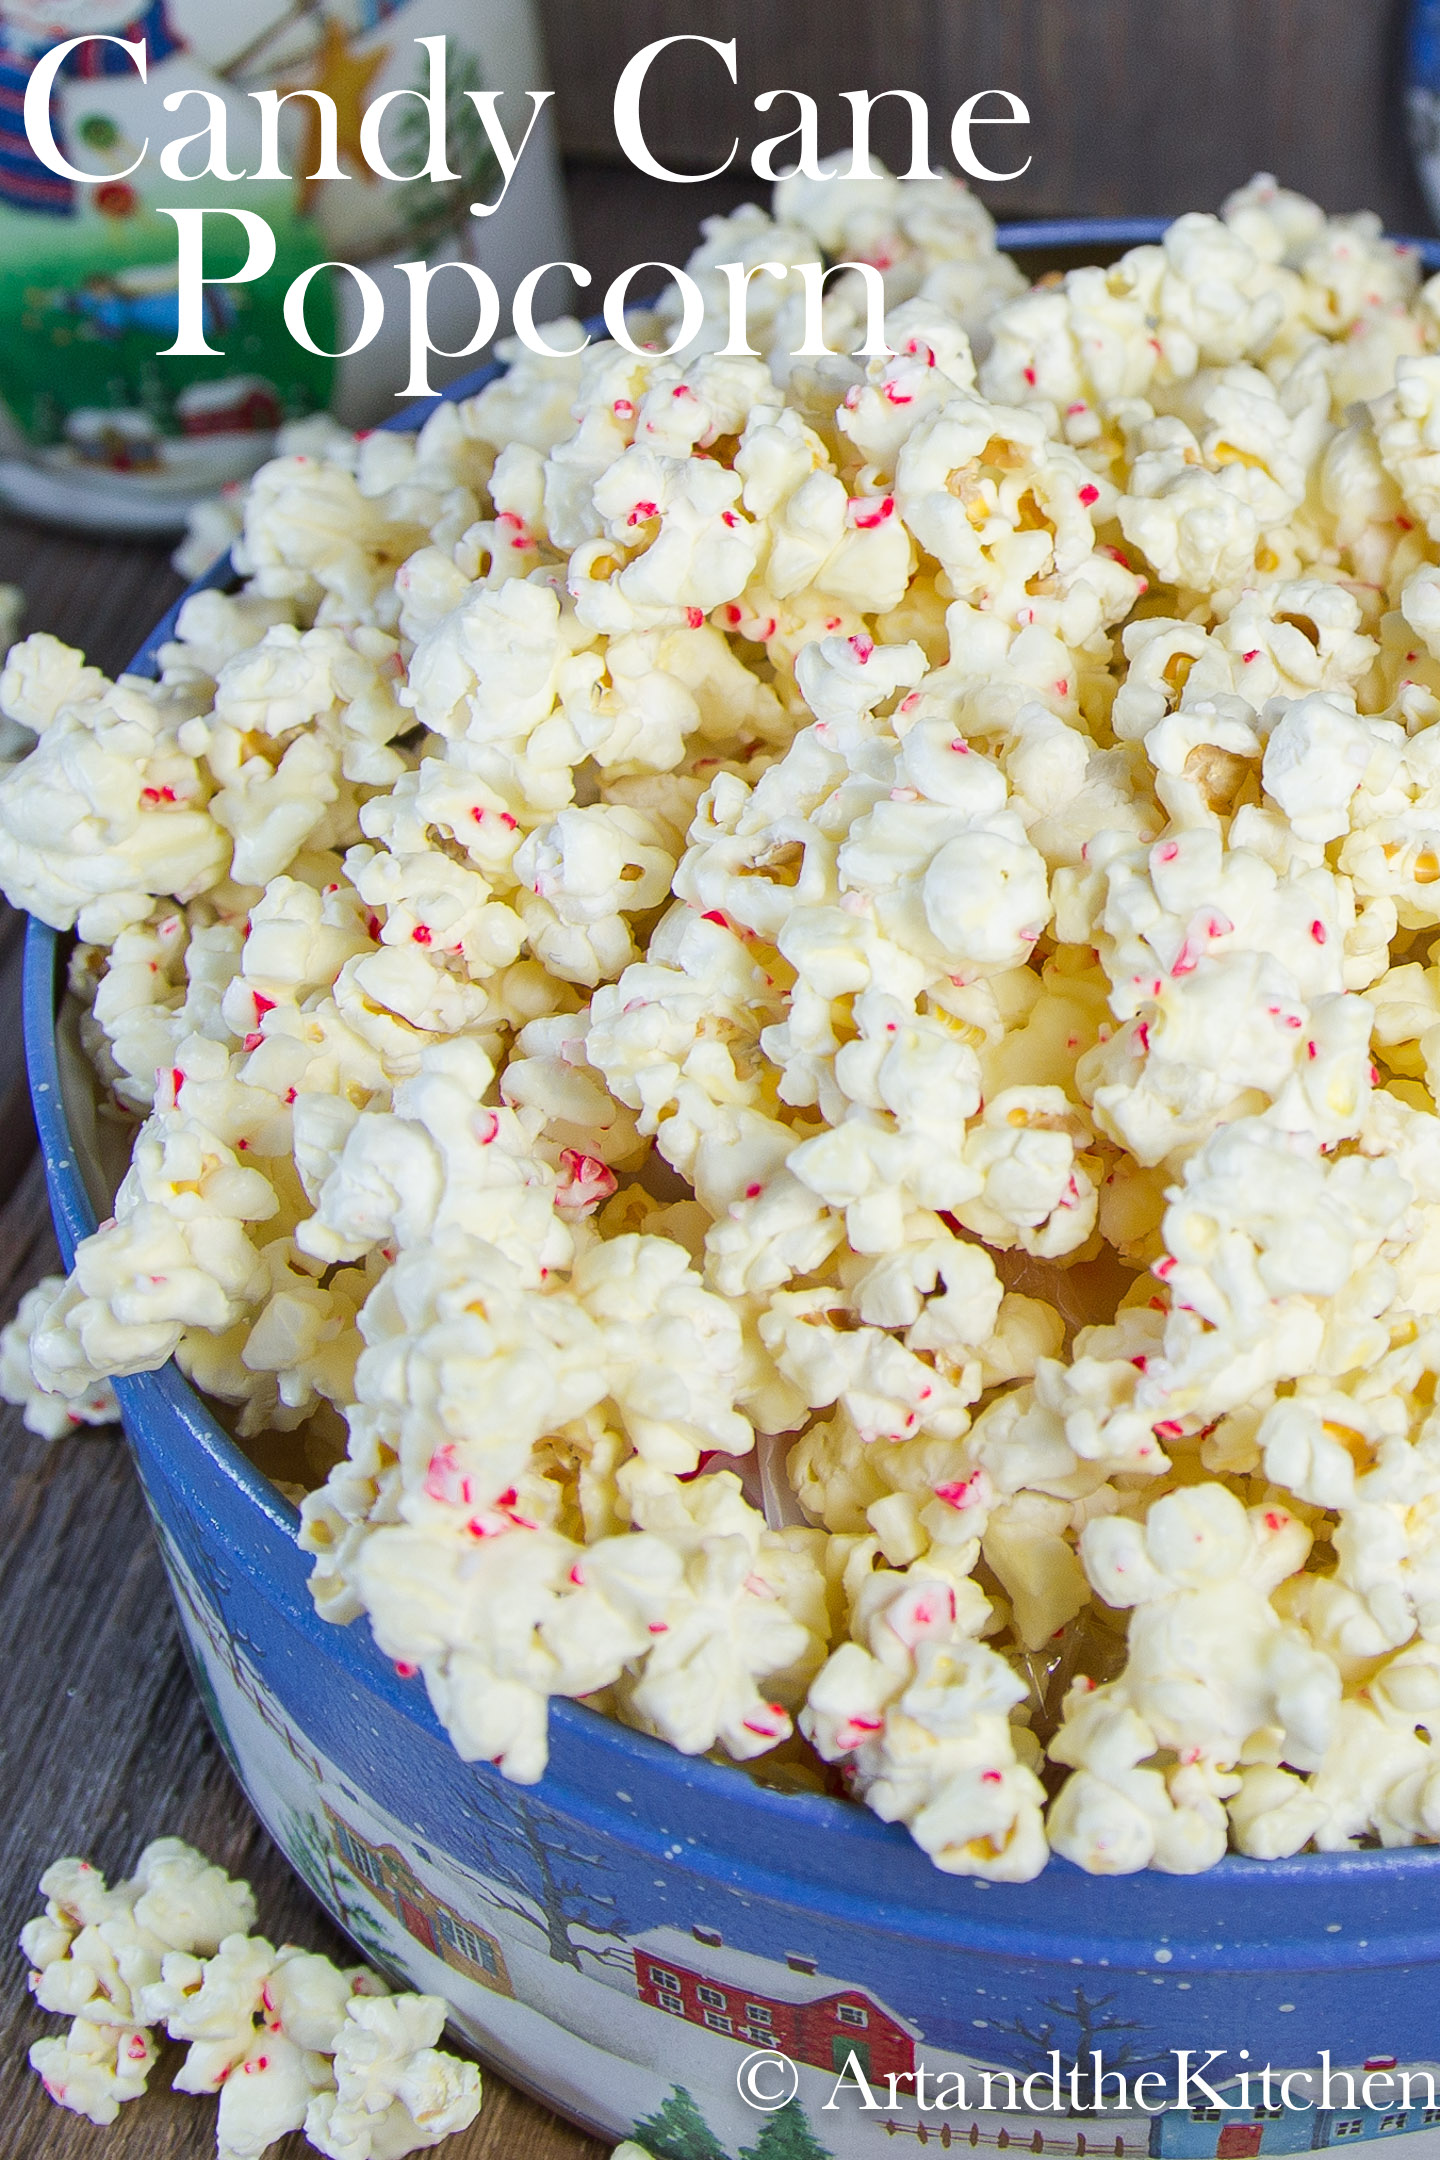 White Chocolate Candy cane popcorn is a must make holiday treat. It is so easy to make, popcorn coated in white chocolate and bits of candy cane. This addictive snack makes a great gourmet food gift. via @artandthekitch